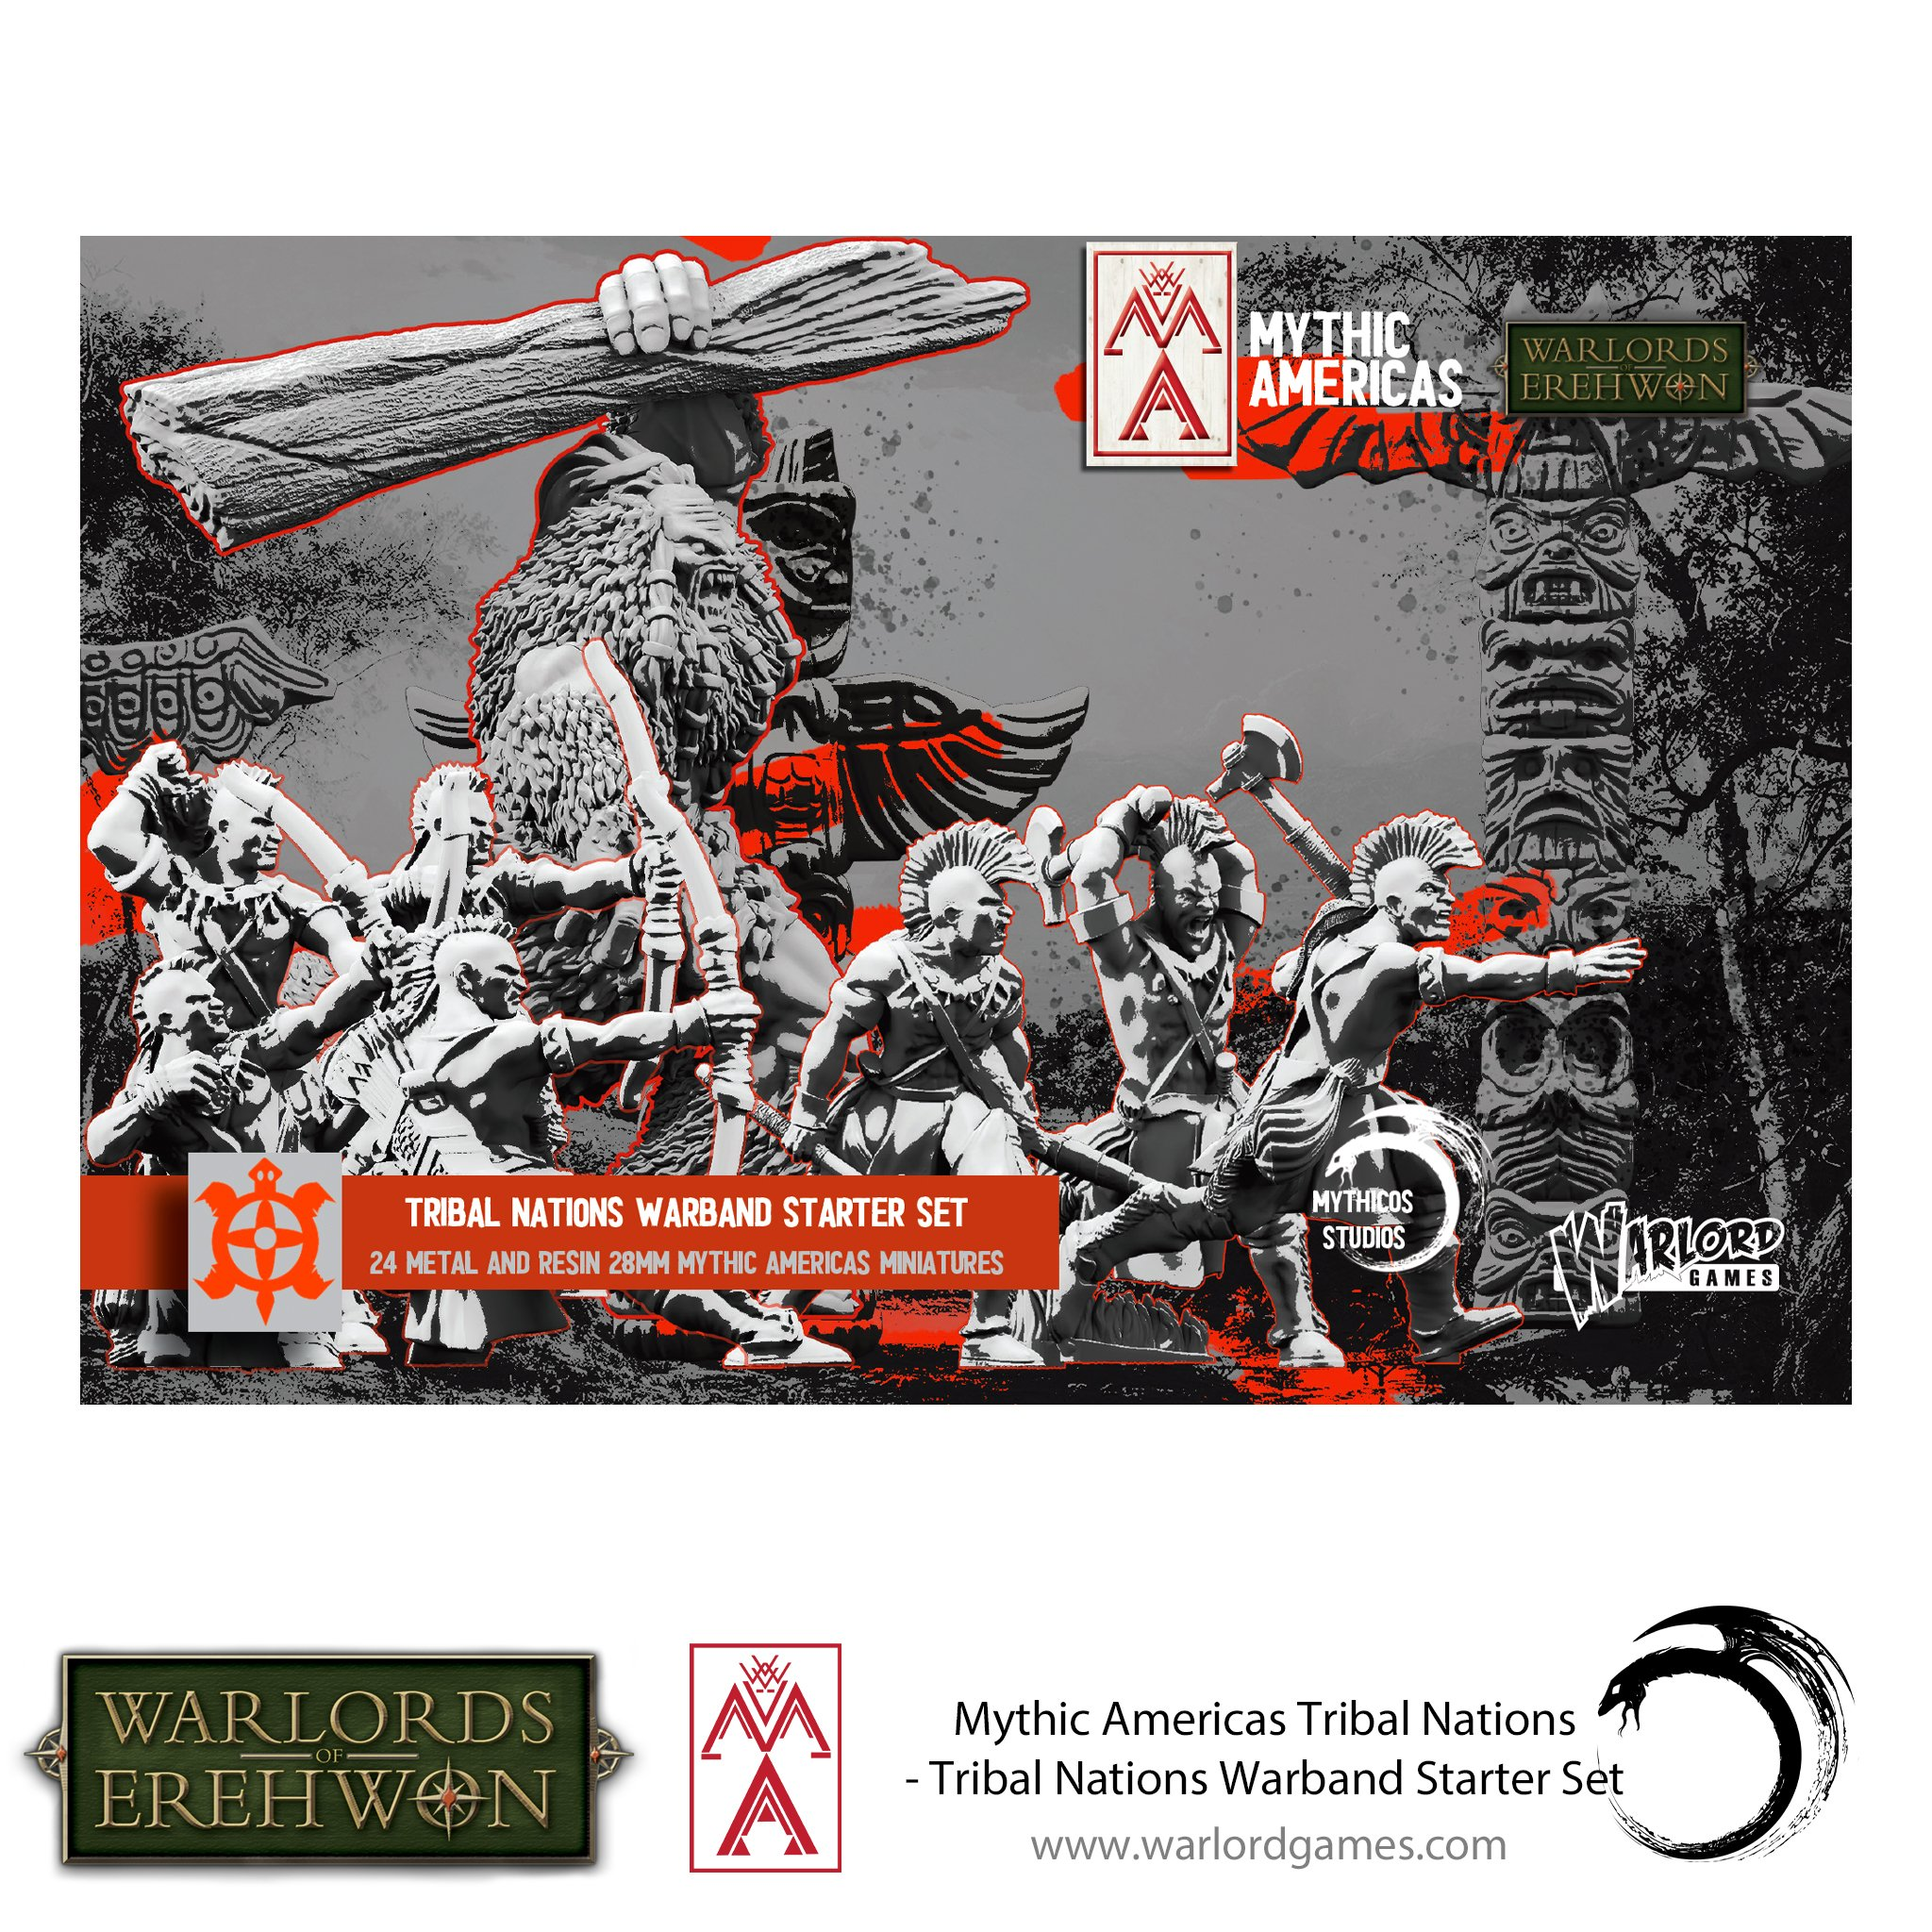 Mythic Americas Tribal Nations Warband Starter Set